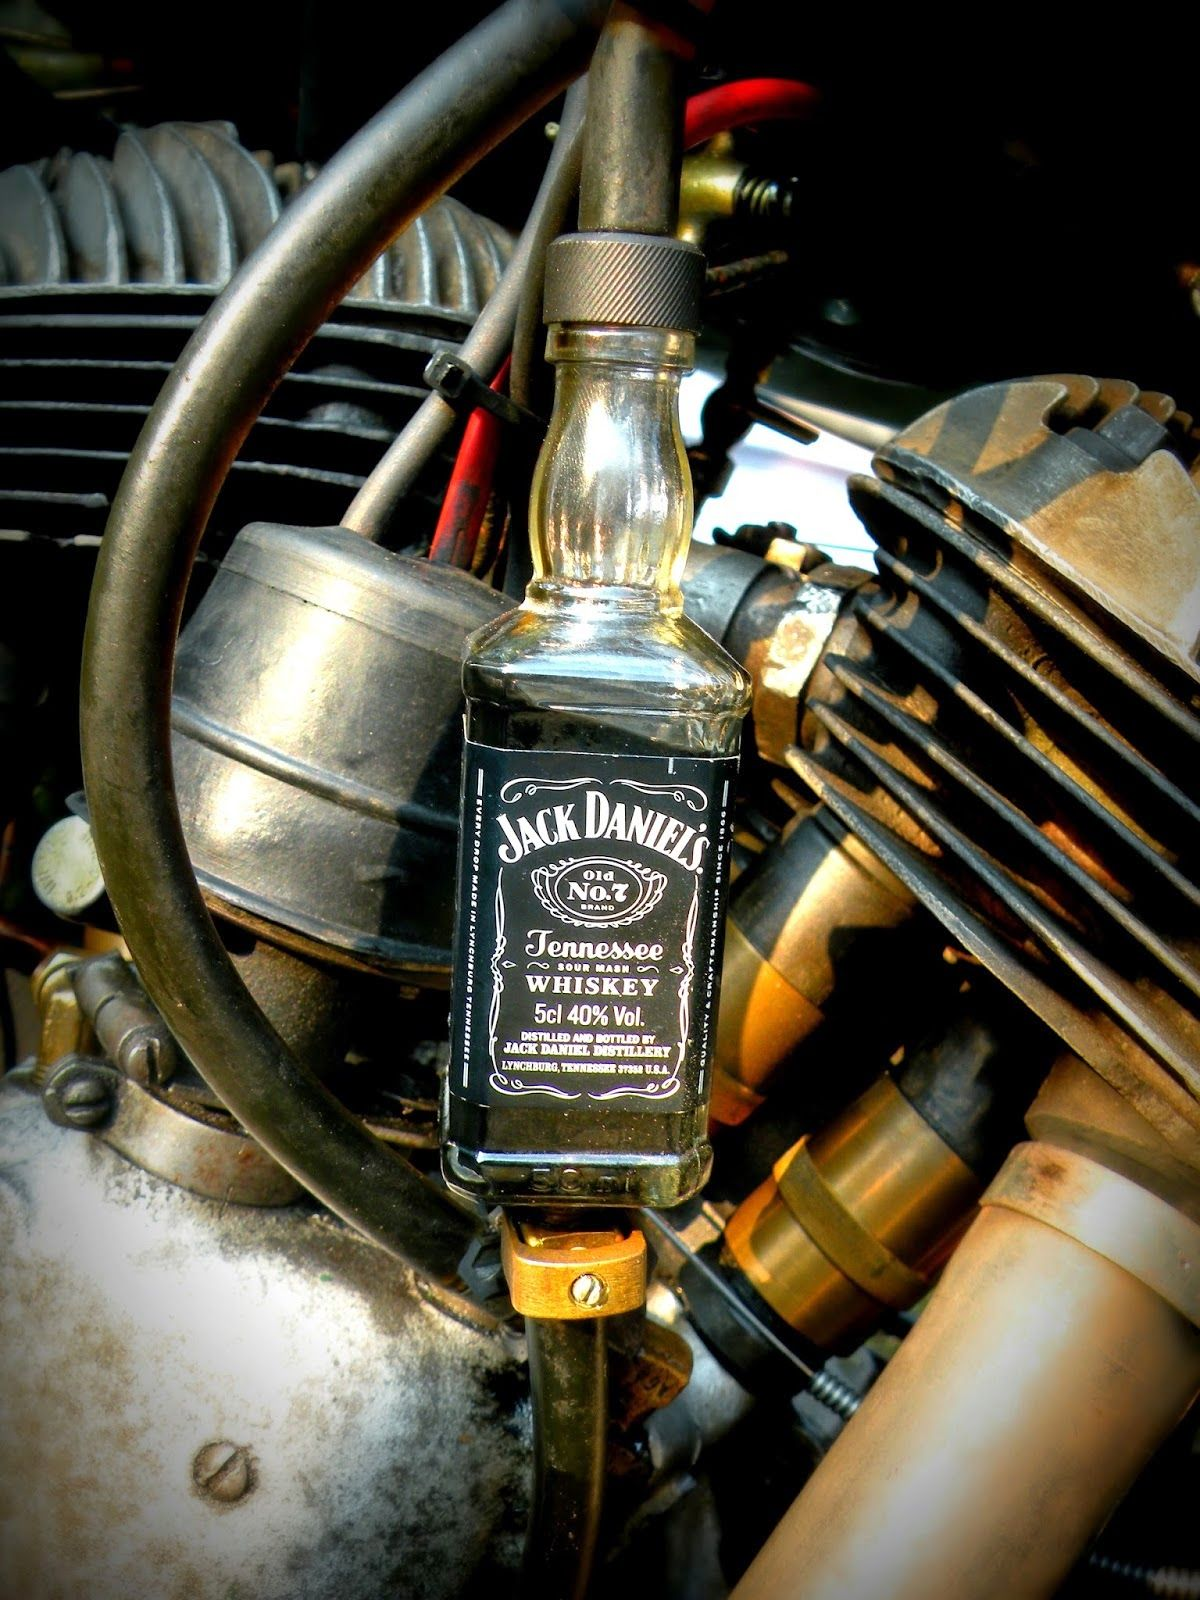 medium resolution of jack daniels oil filter fuel filter jack daniels motorcycle oil filter motorcycle fuel filter custom motorcycle part was crafted by bastybikes art if